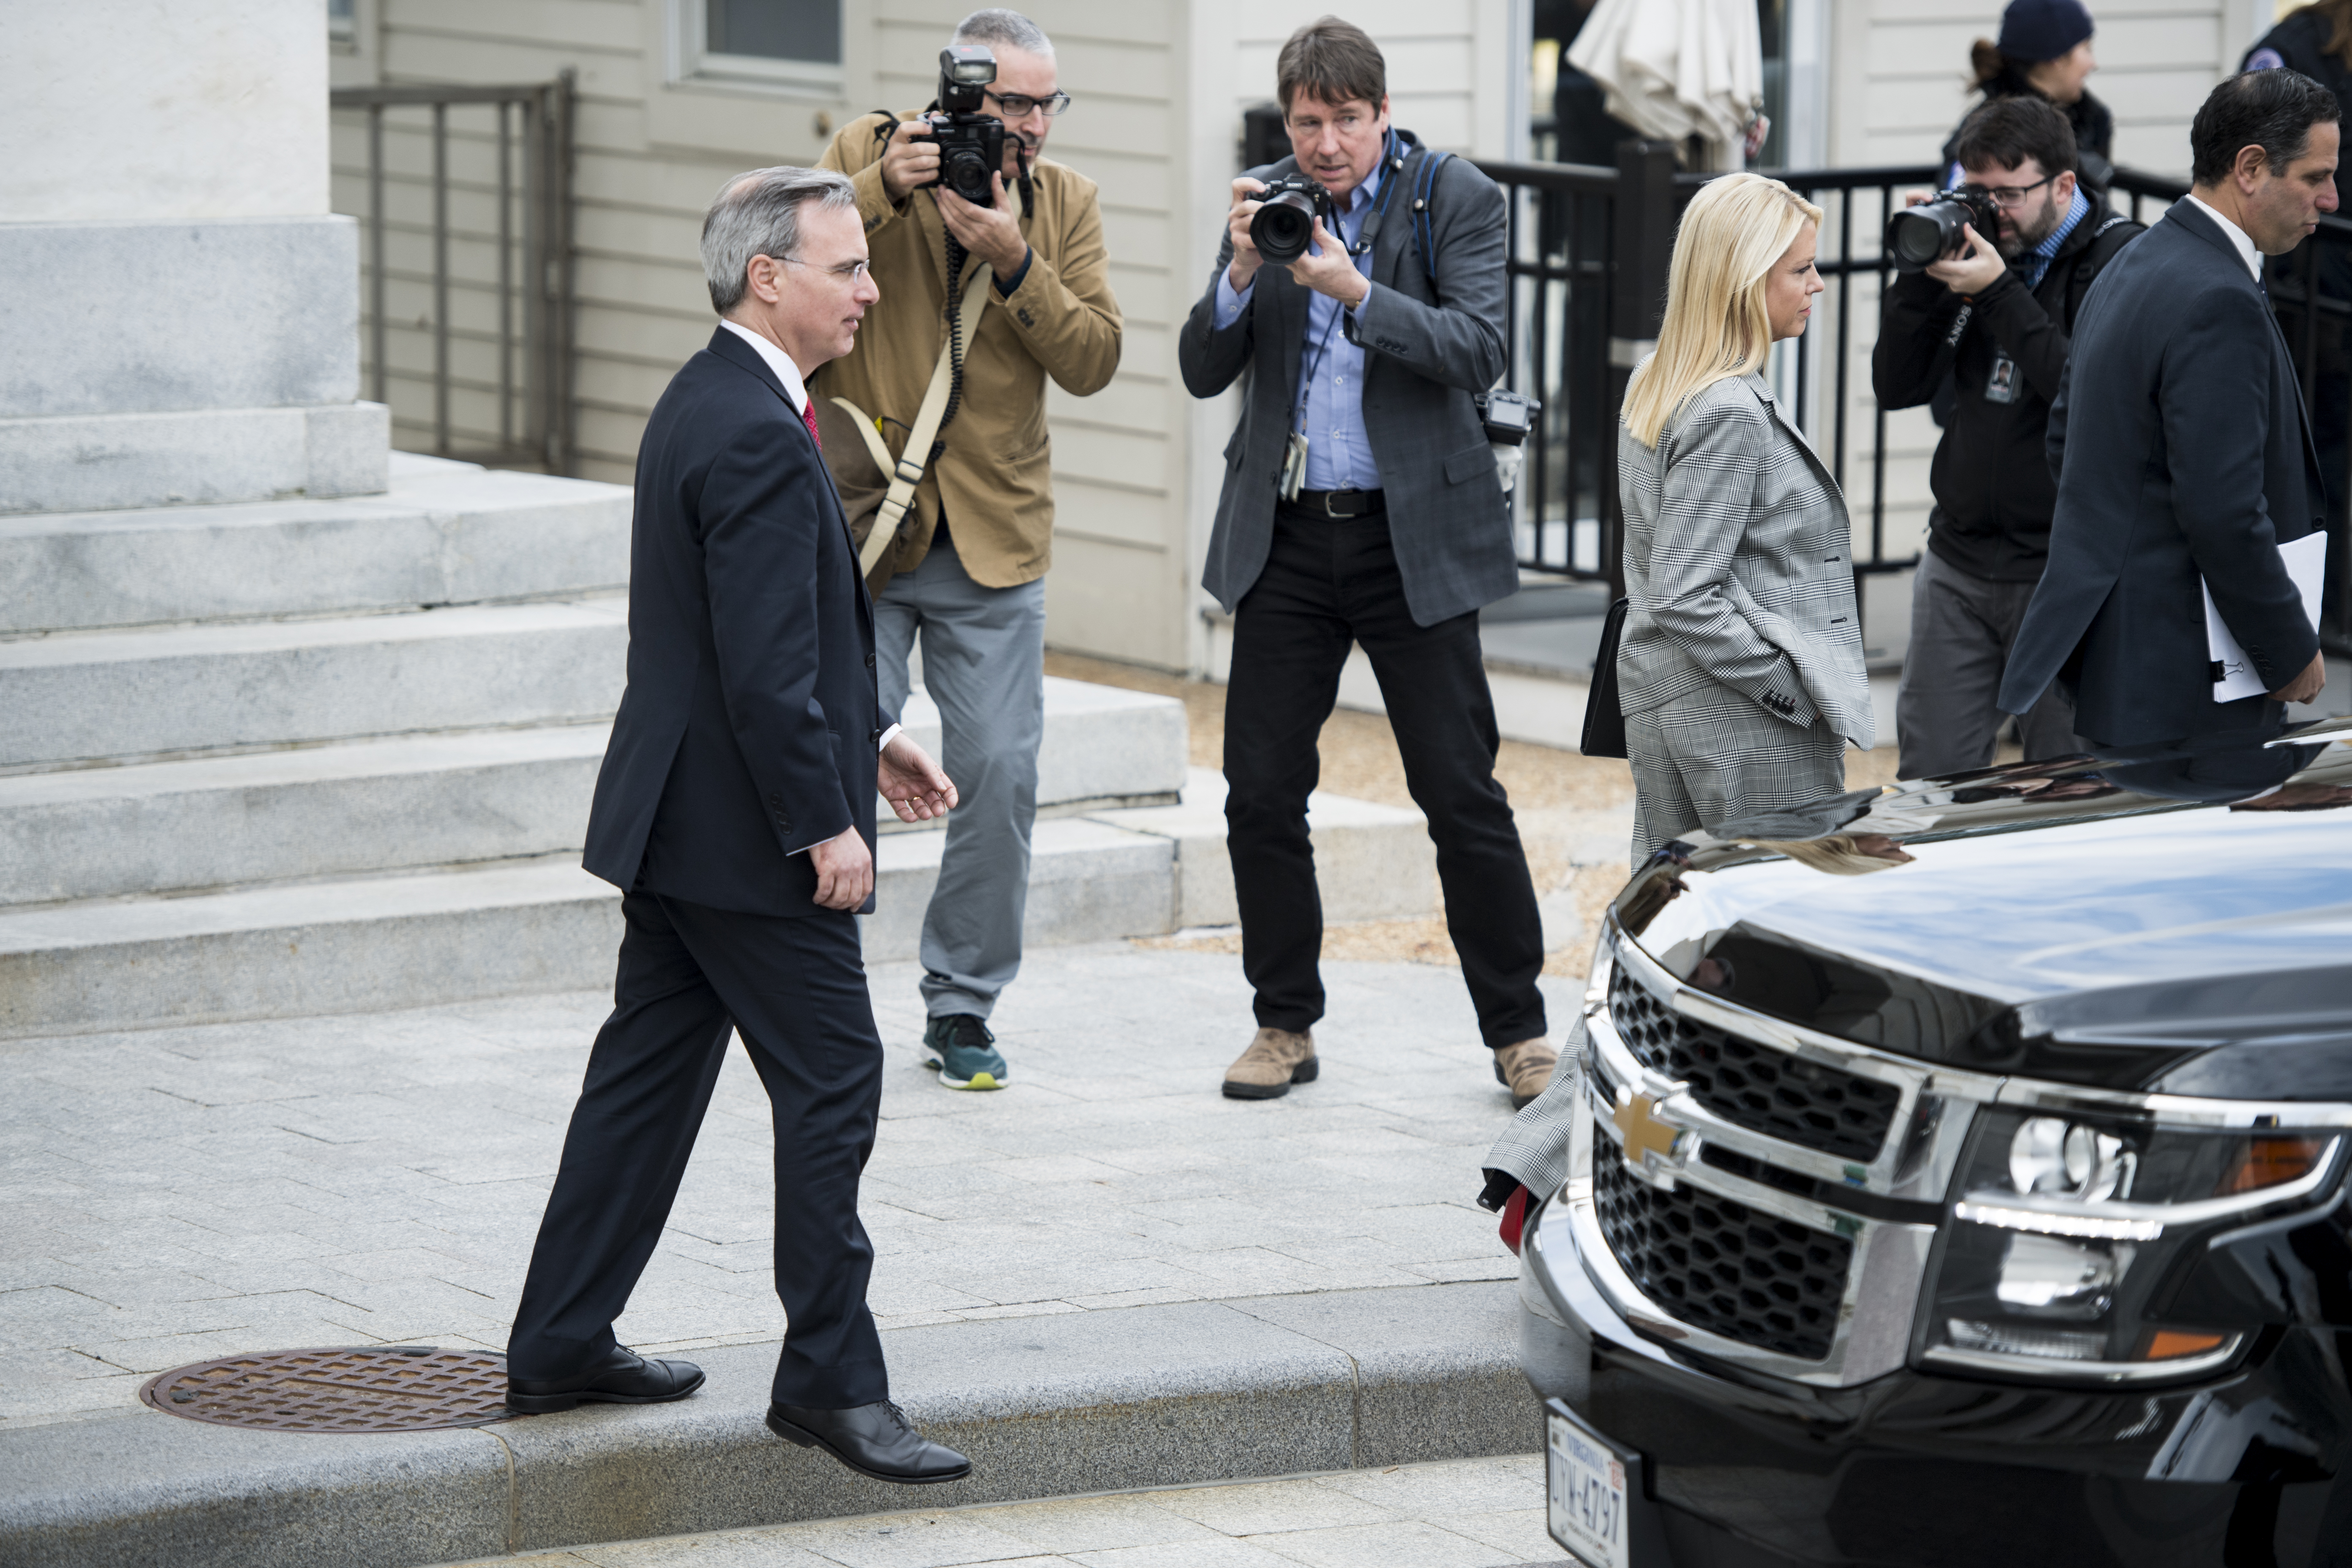 UNITED STATES - DECEMBER 4: White House Counsel Pat Cipollone and Pam Bondi leaves the Capitol after attending the Senate Republicans' lunch on Wednesday, Dec. 4, 2019. (Photo By Bill Clark/CQ Roll Call)